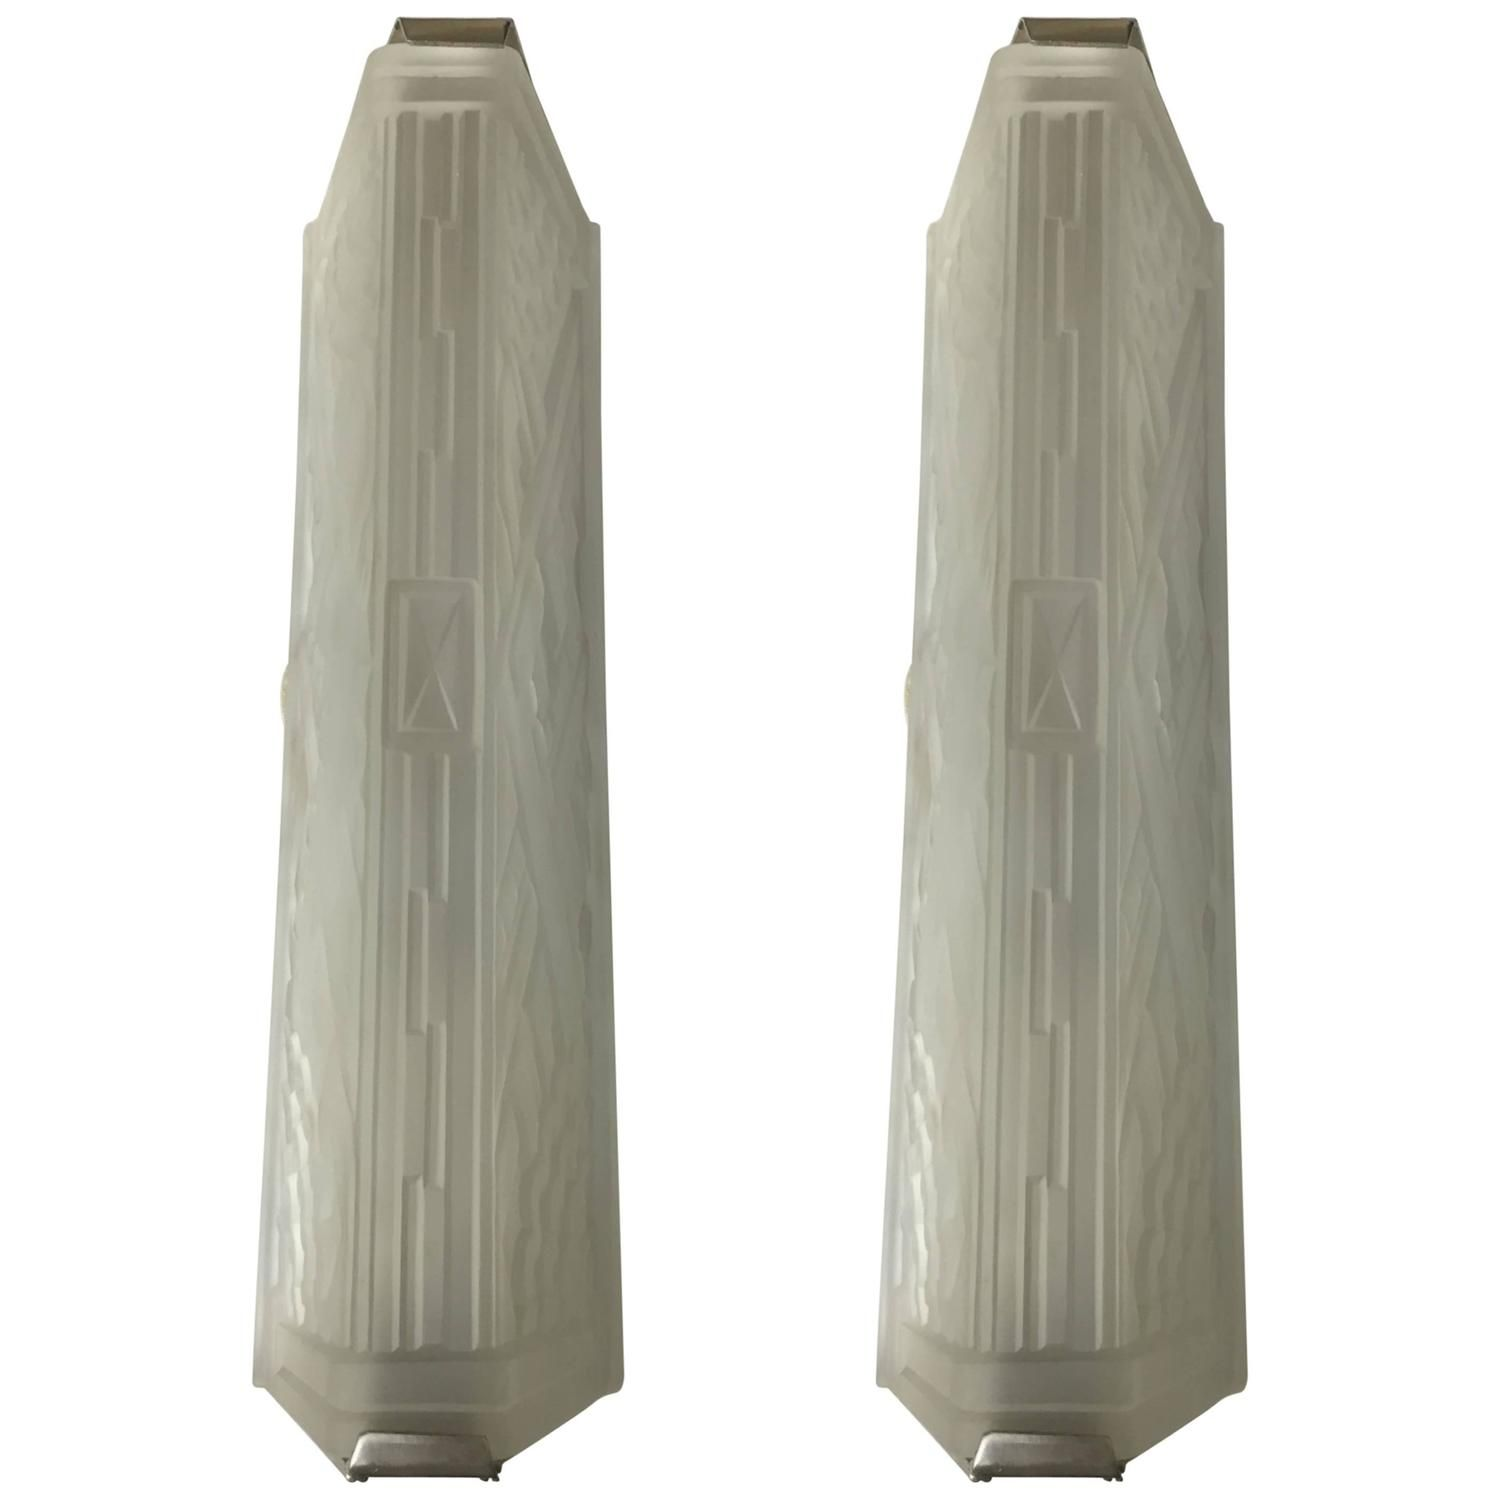 Incredible Pair of French Art Deco Wall Sconces